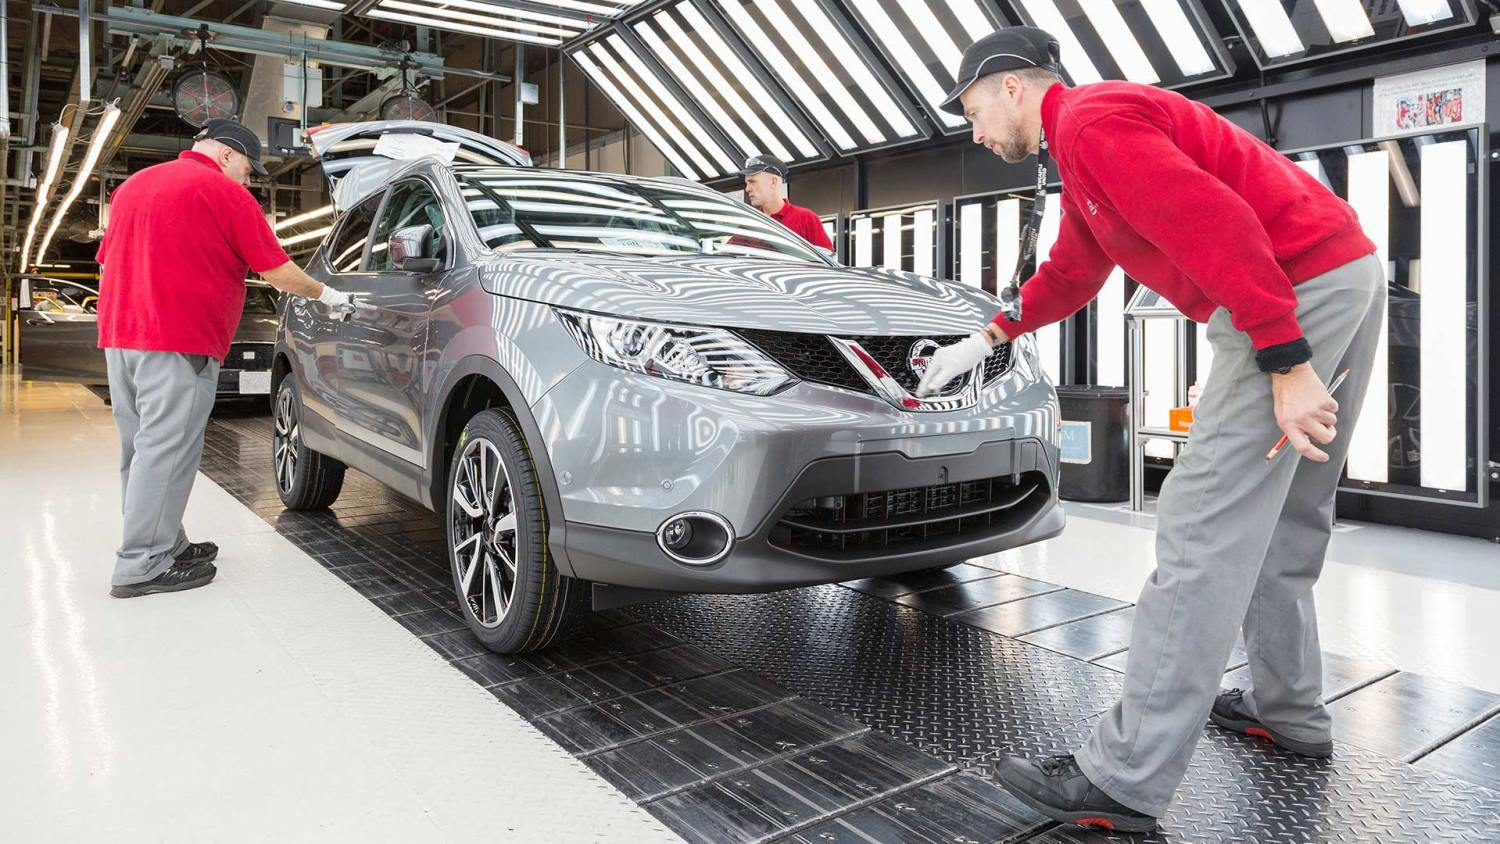 No New Nissan X-Trail for Sunderland with Brexit a factor